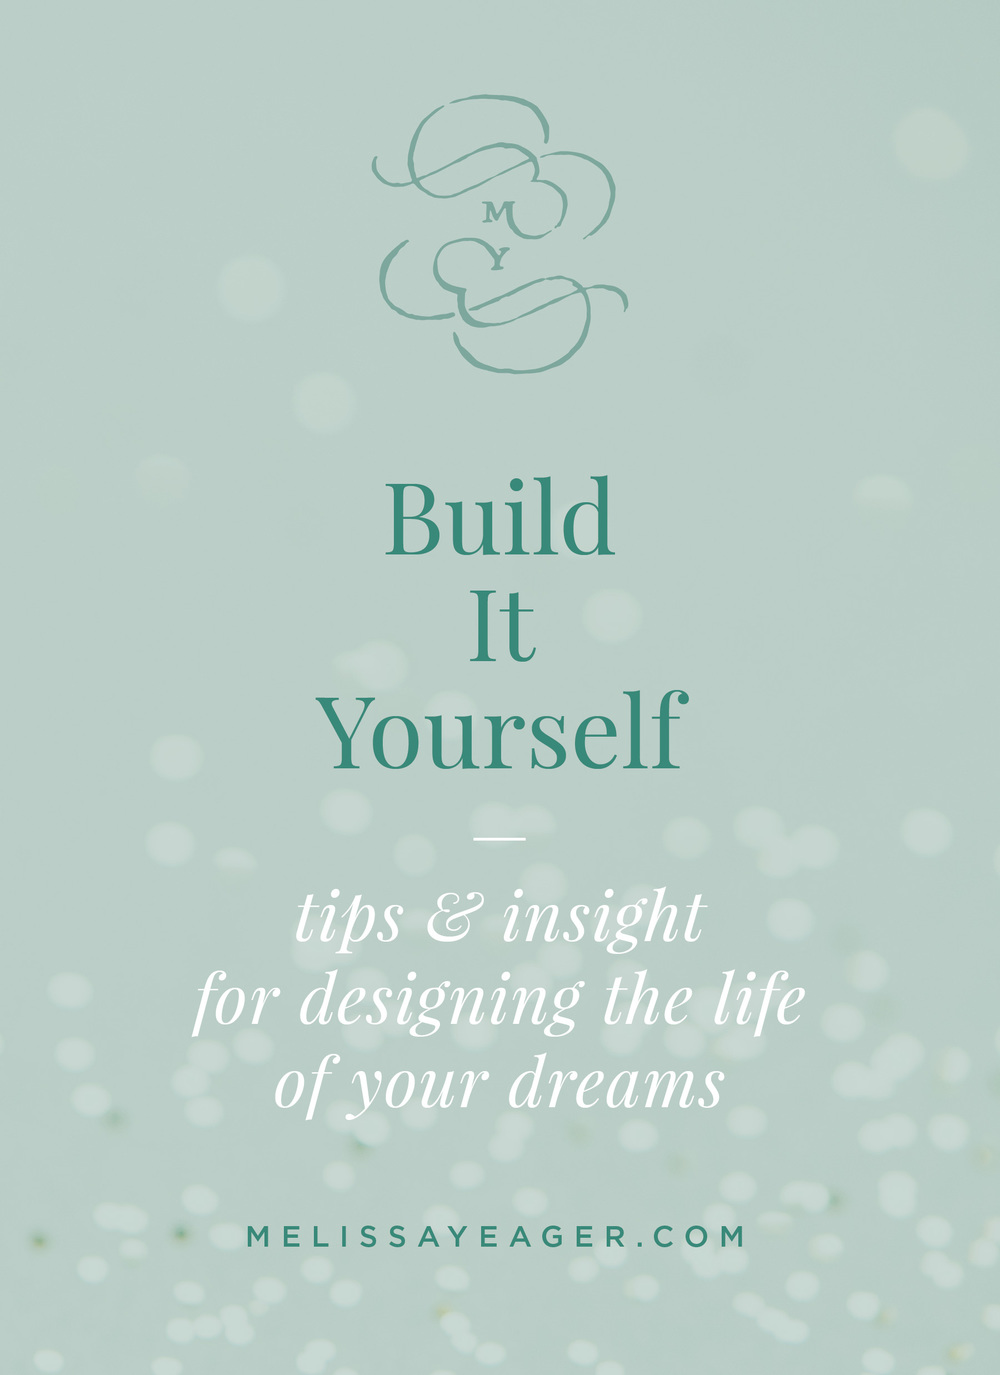 Build It Yourself - tips & insight for designing the life of your dreams